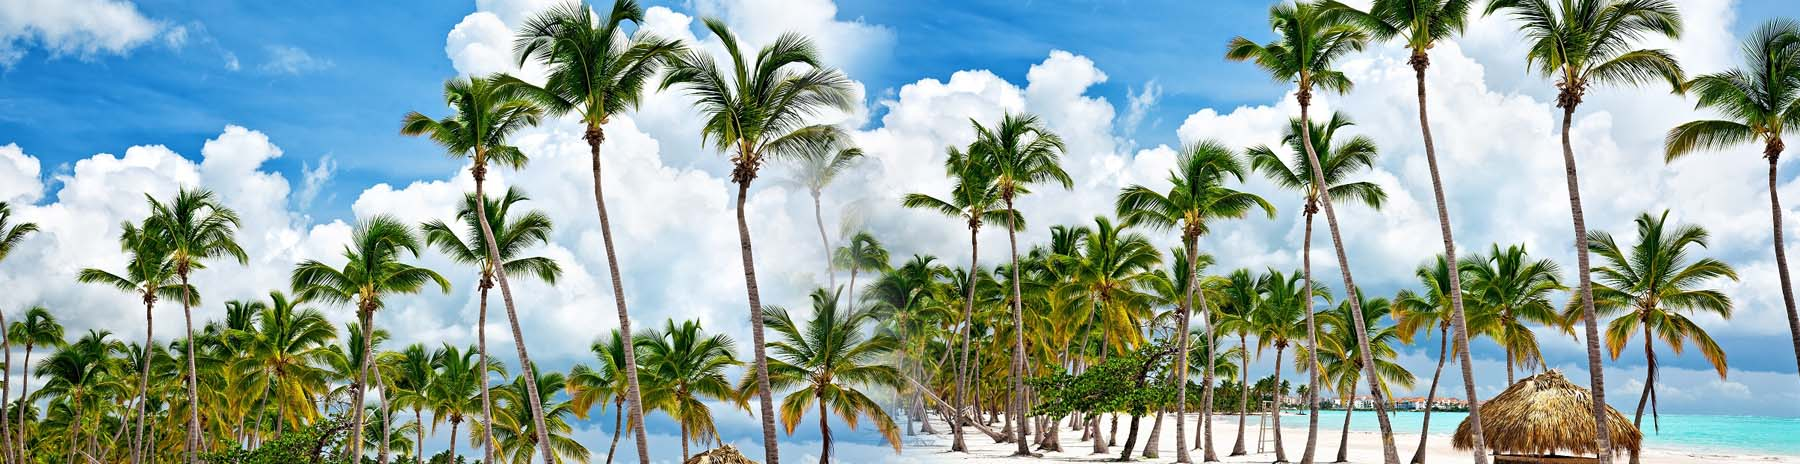 Picturesque Punta Cana